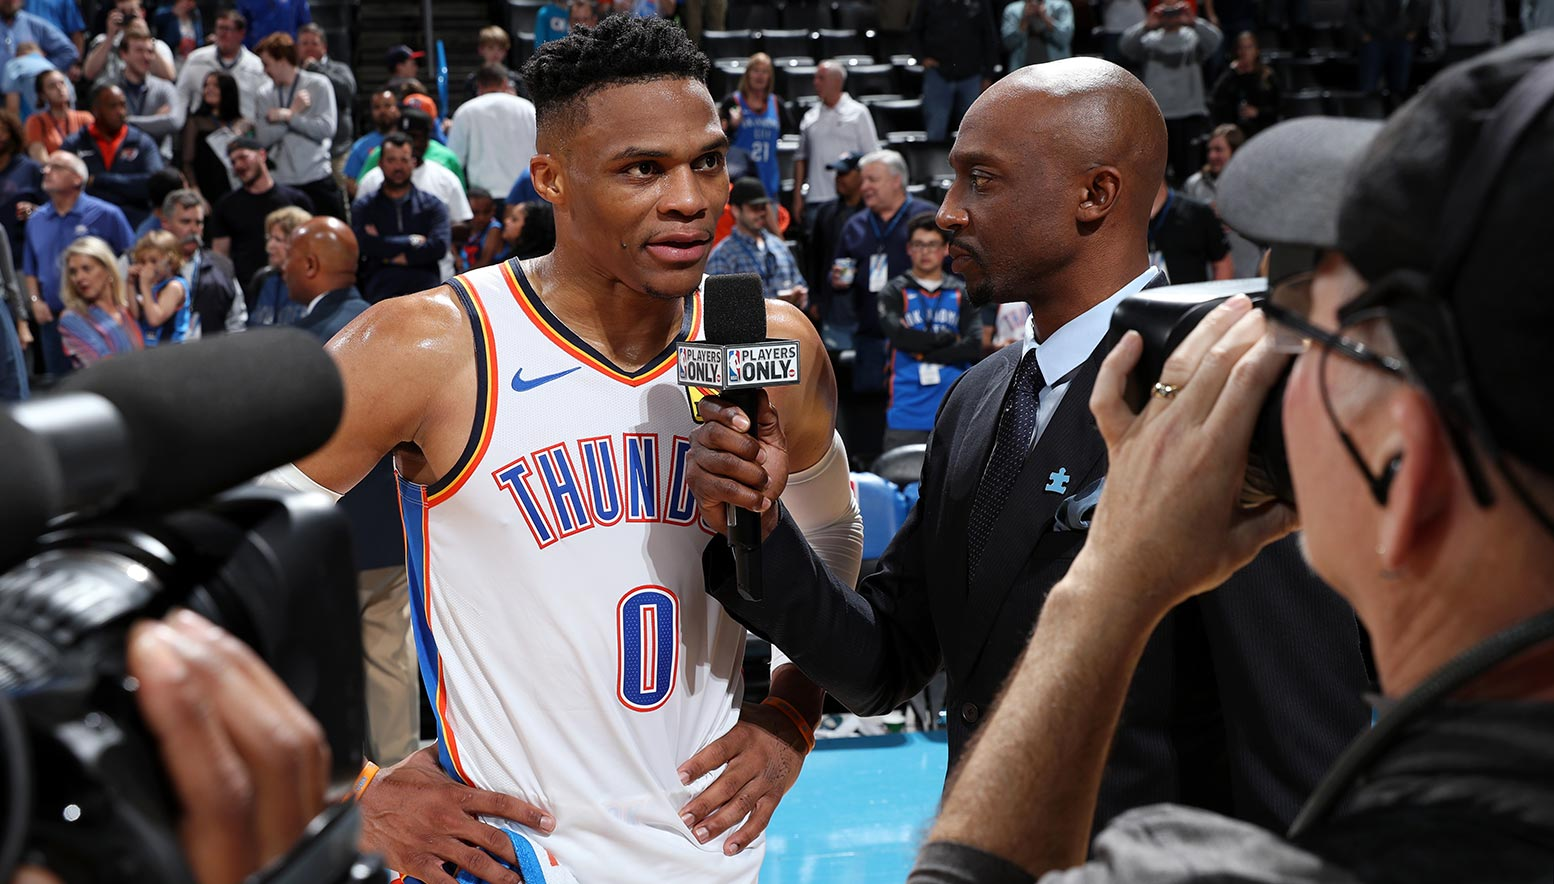 Russell Westbrook speaks with Jason Terry after the game against the Los Angeles Lakers in which he joined NBA Legend Wilt Chamberlain as the 2nd player in NBA History to attain a record of 20/20/20